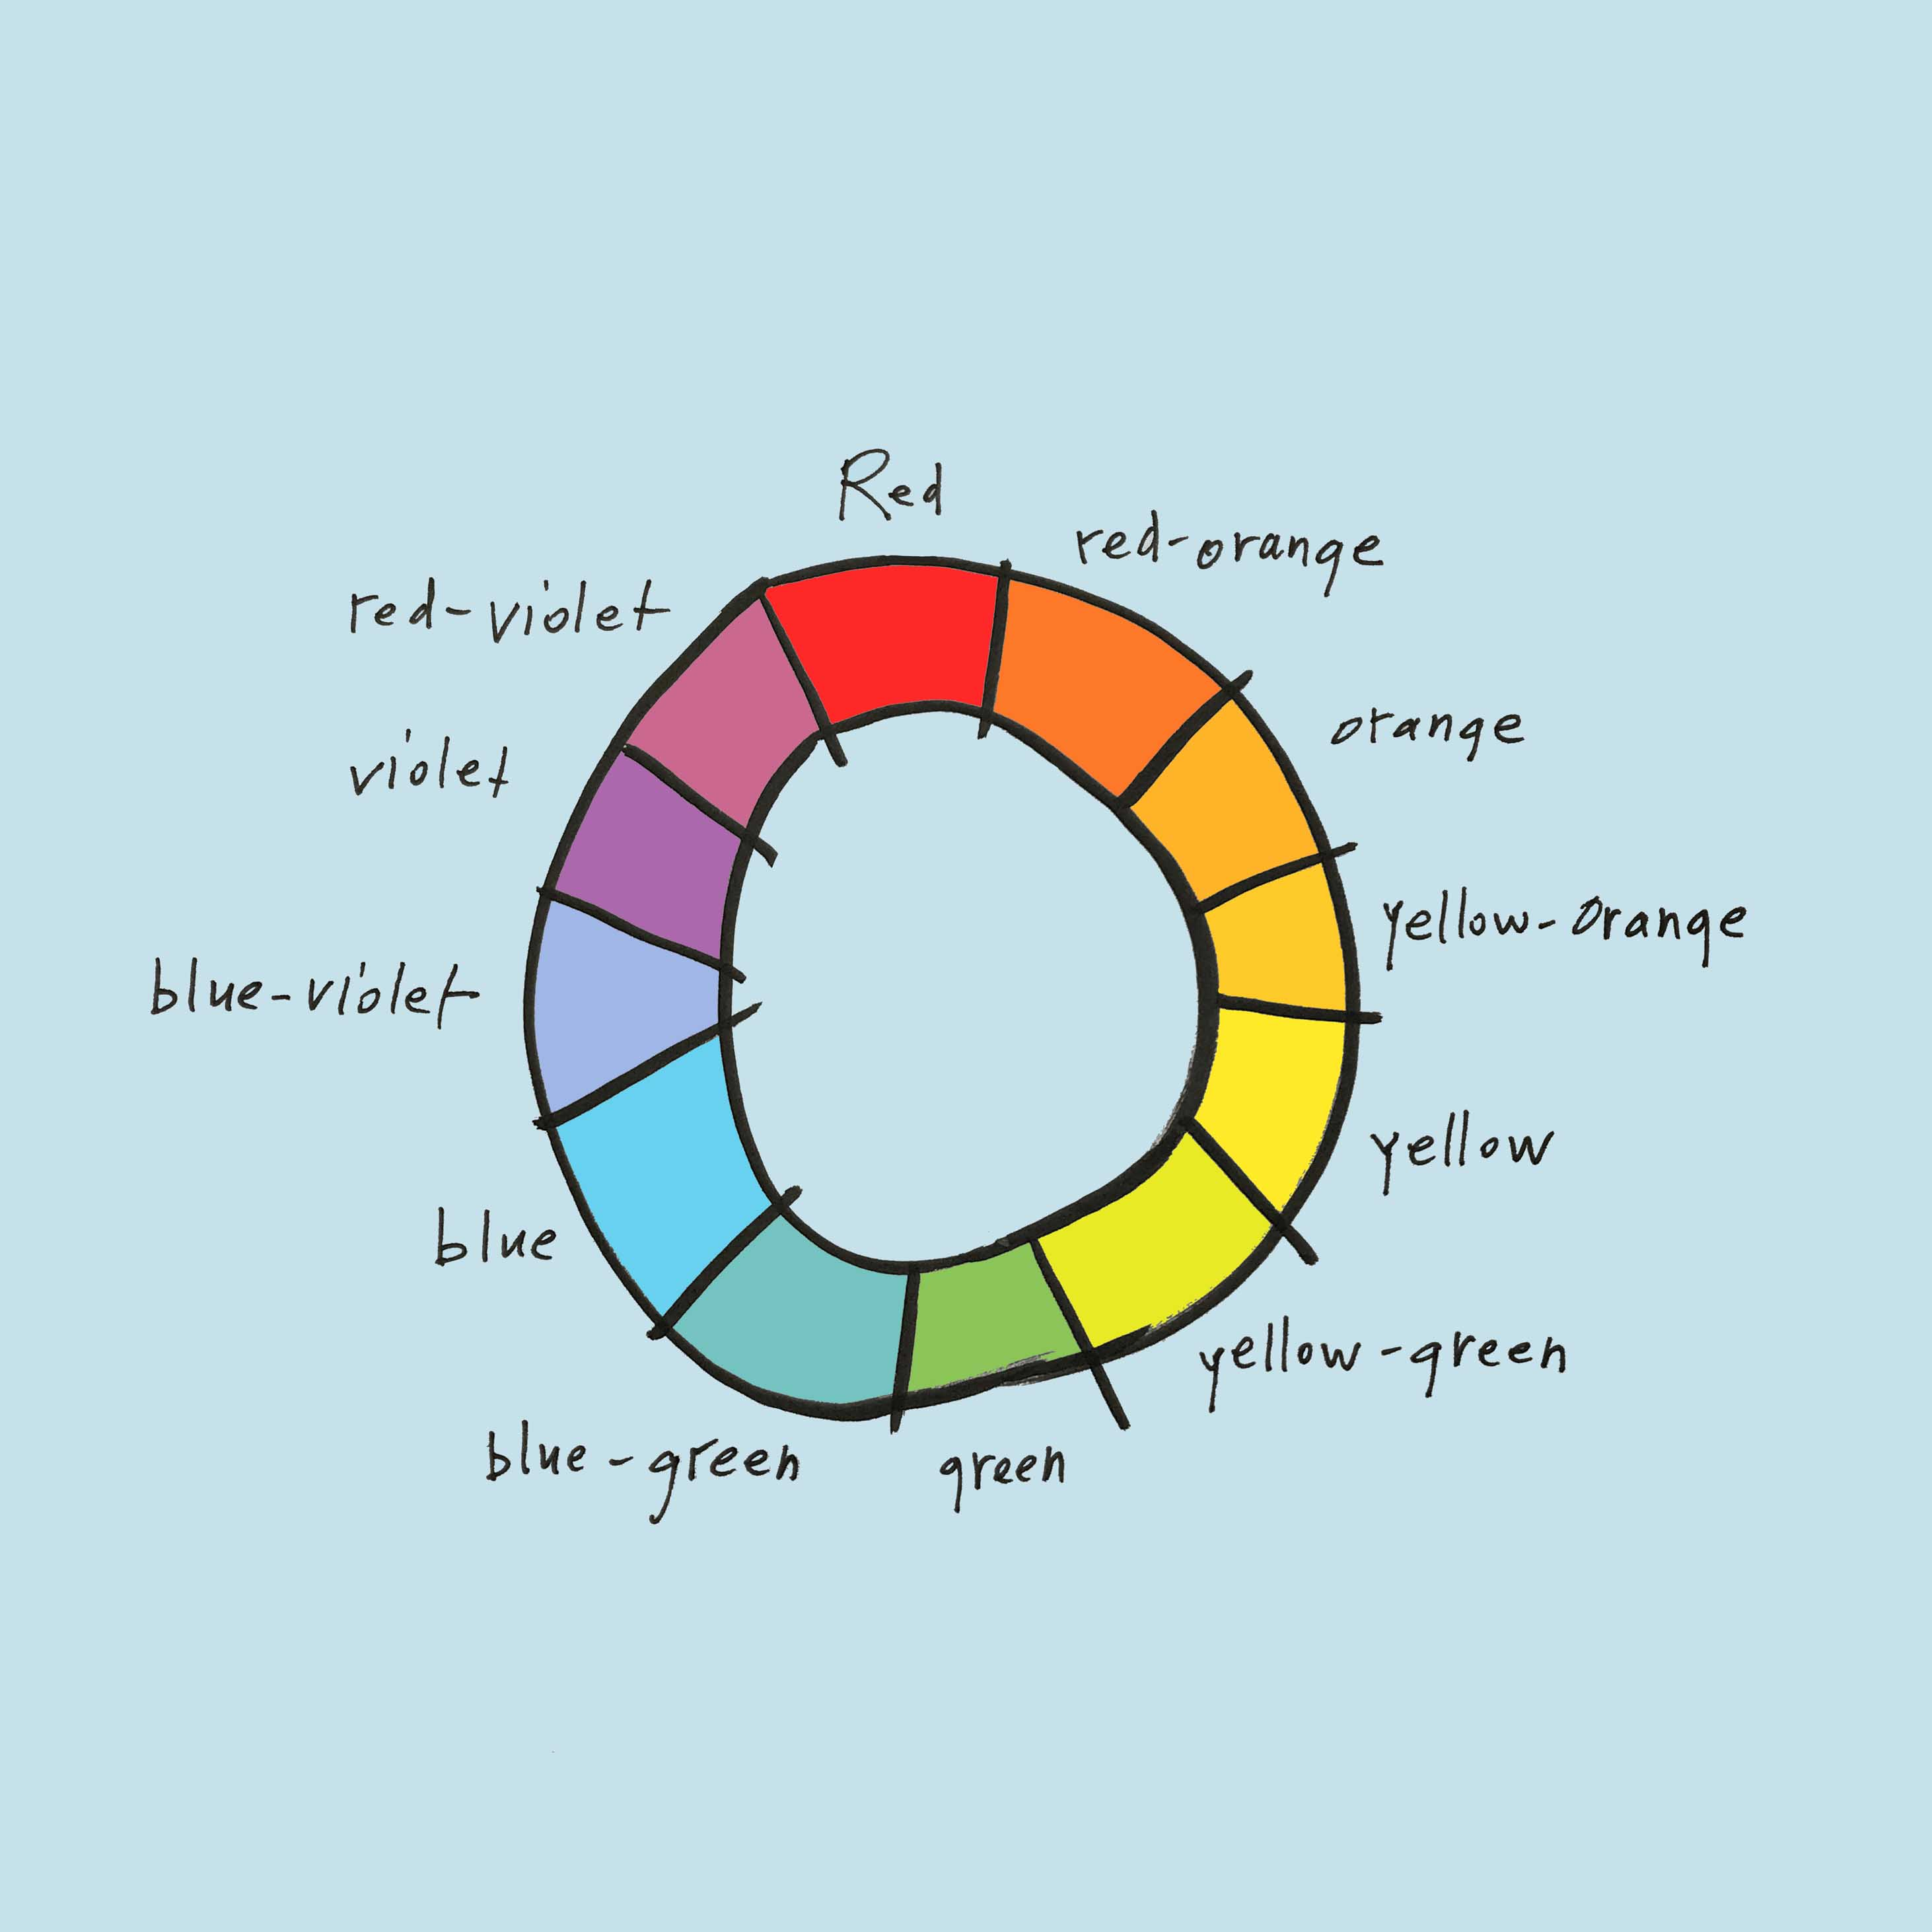 art every day number 229 colour color organization chart